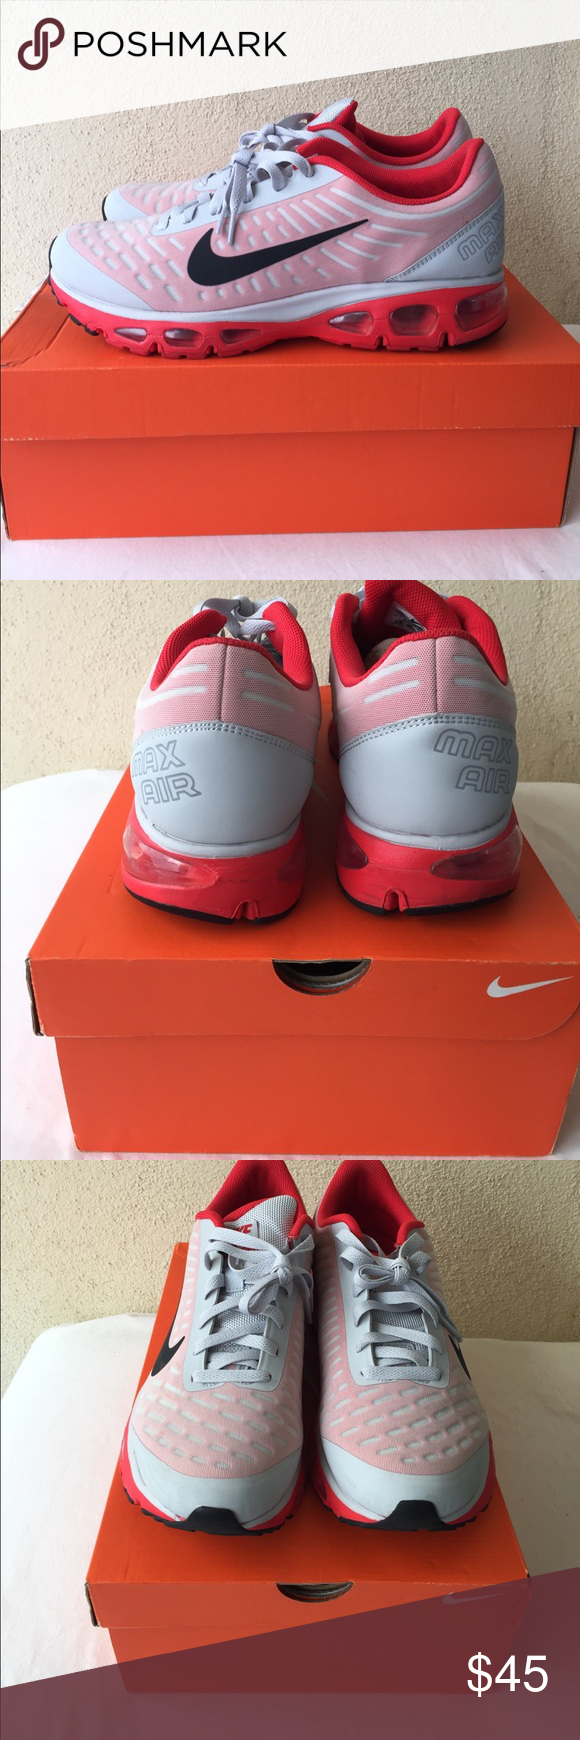 Air Max Tailwind + 5 Sneakers, Tailwind